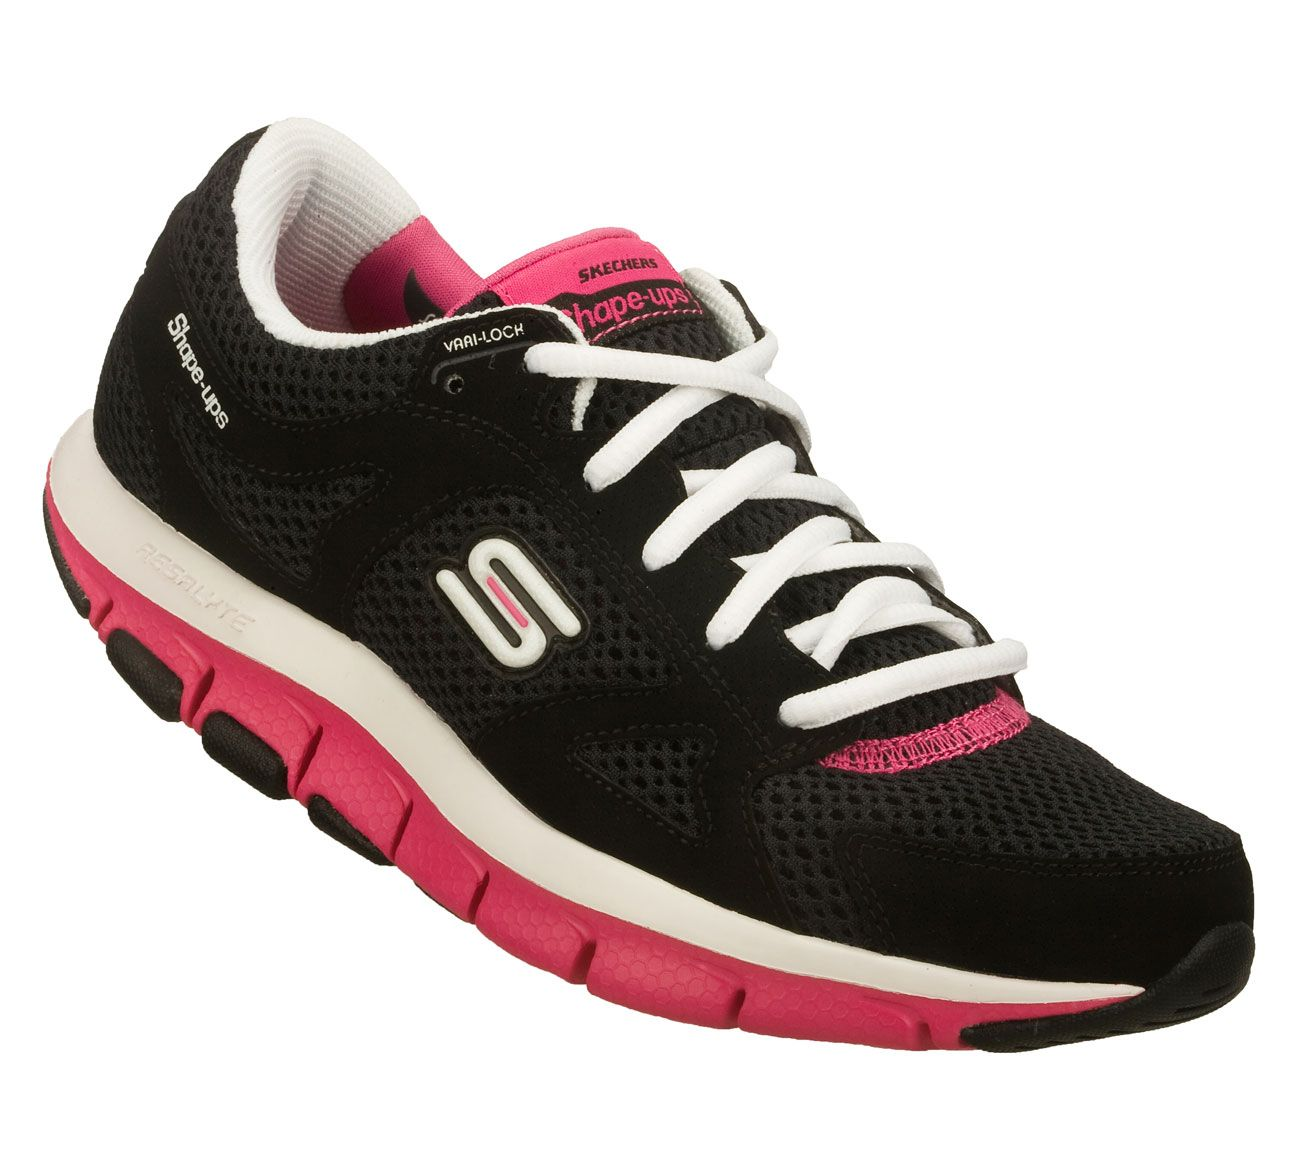 Buy SKECHERS Women's Shape-ups Liv Walking Shoes only $70.00 These are awesome if you're on your feet all day